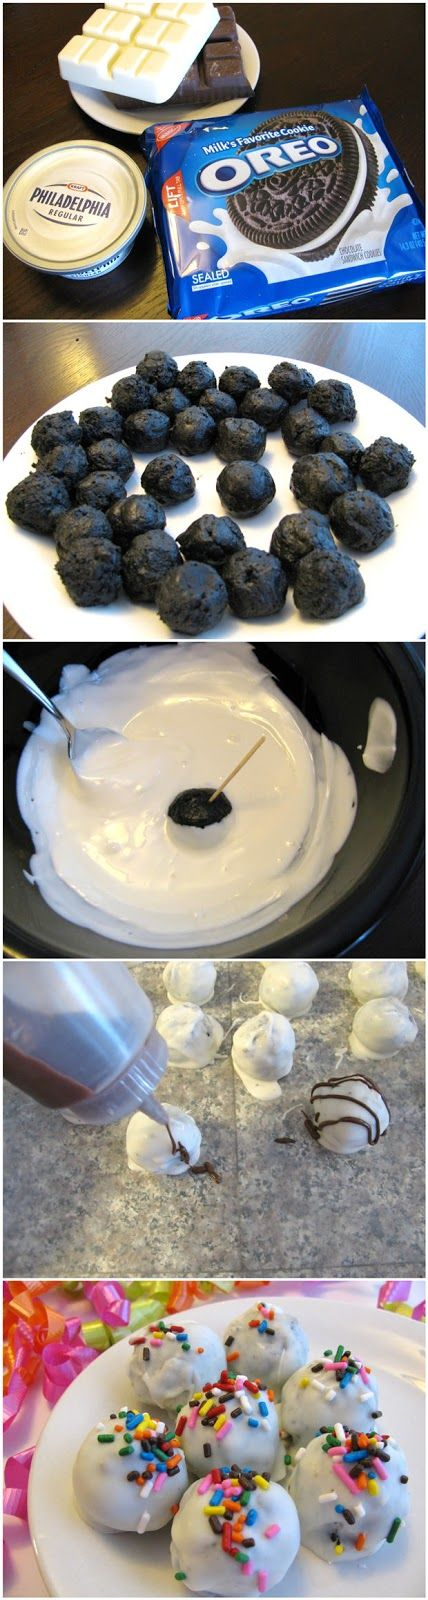 Oreo Balls @Emily Schoenfeld Schoenfeld Schoenfeld Alyssa Jones we are so doing this next weekend.. holy fat.